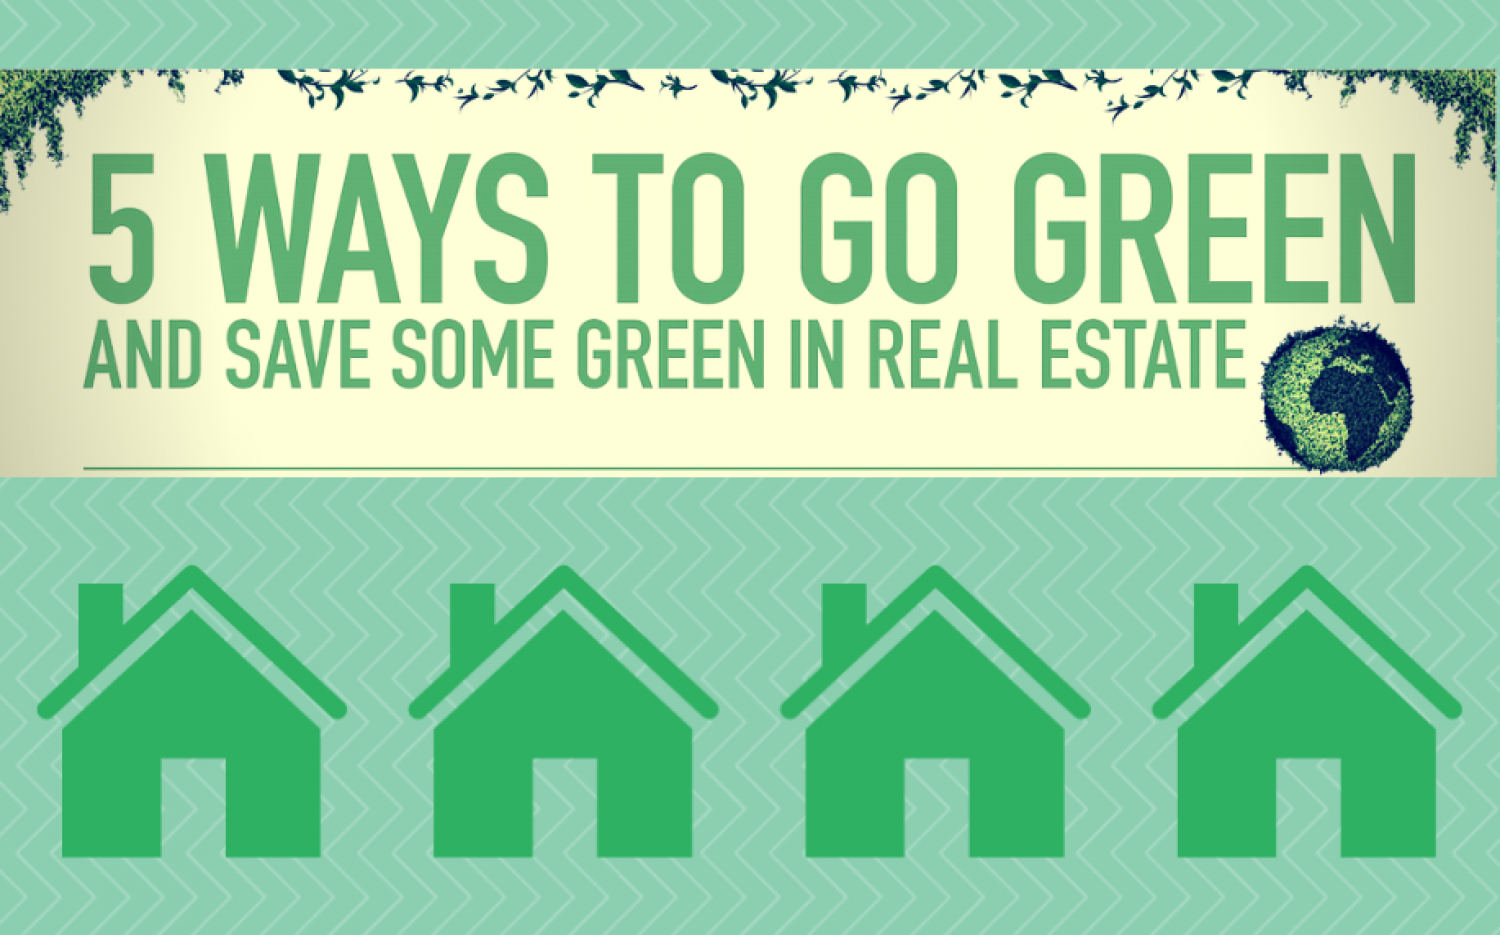 5 Ways To Go Green And Save Some Green In Real Estate Infographic